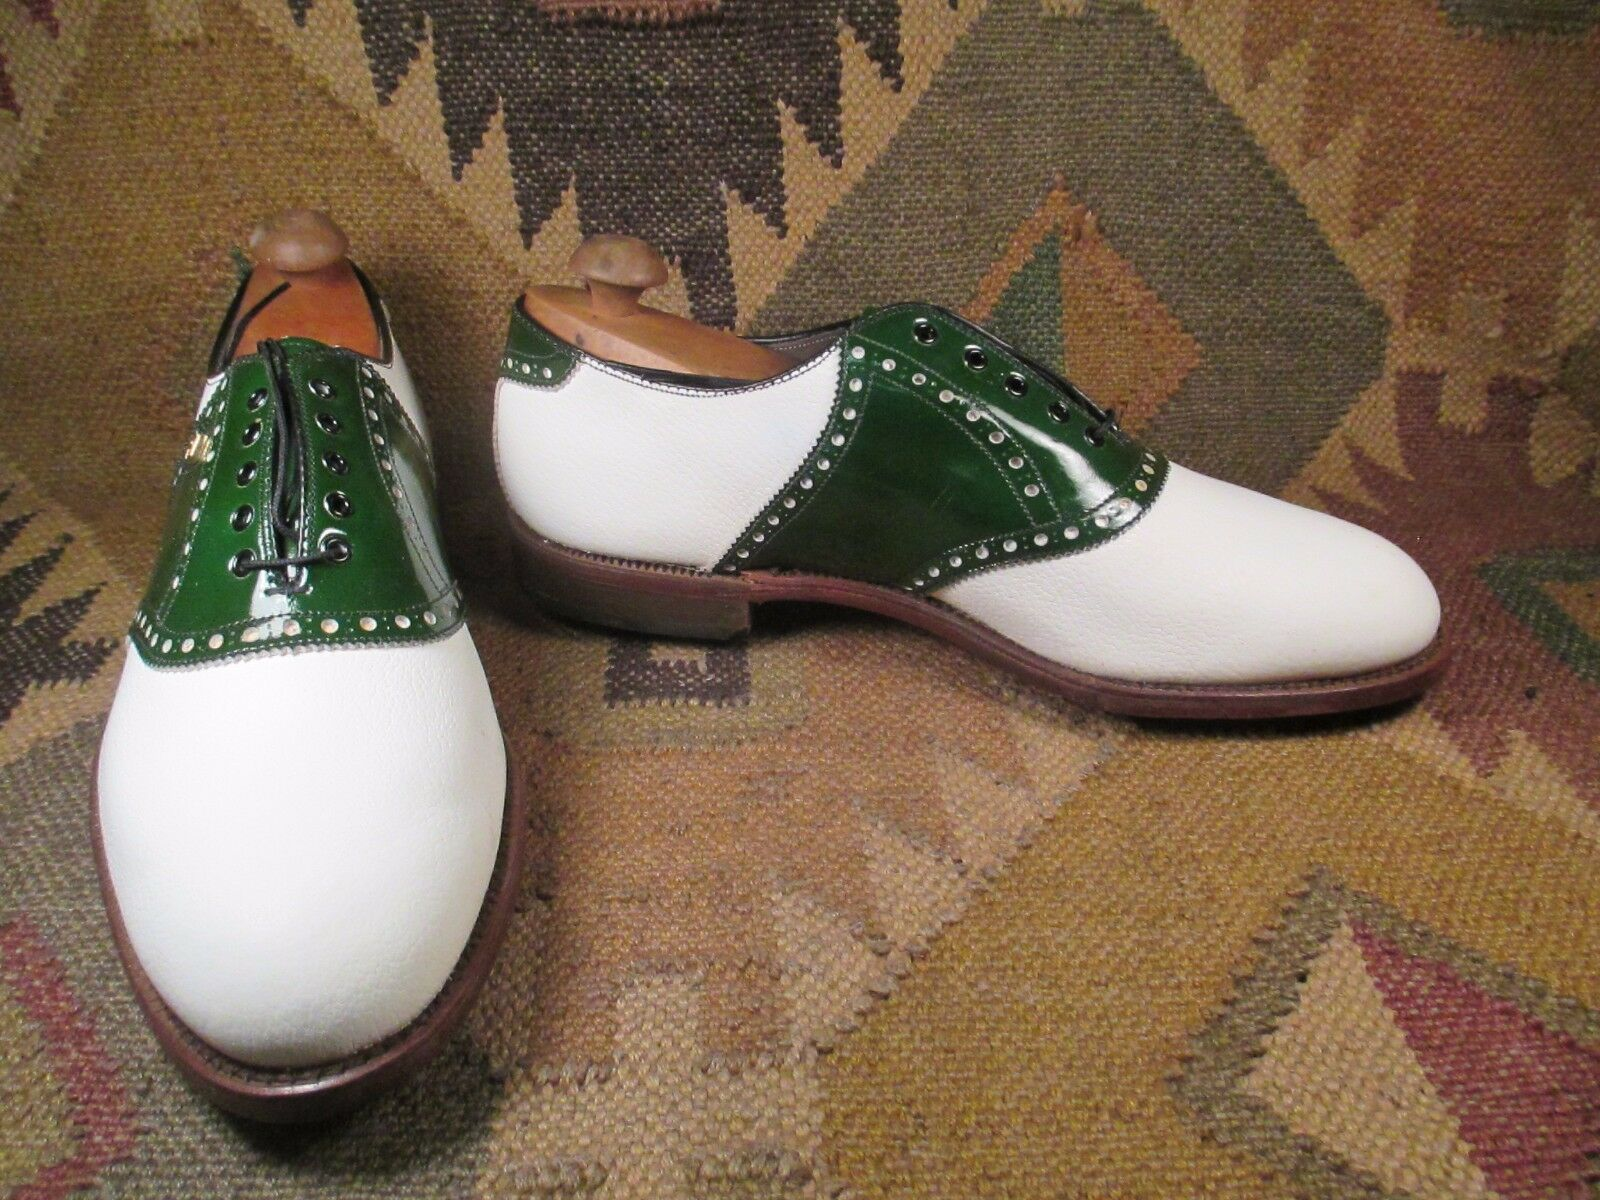 VTG FootJoy Two tone White & Green Saddle Saddle Green Oxford Golf shoes Size 10.5 EE ba54ac